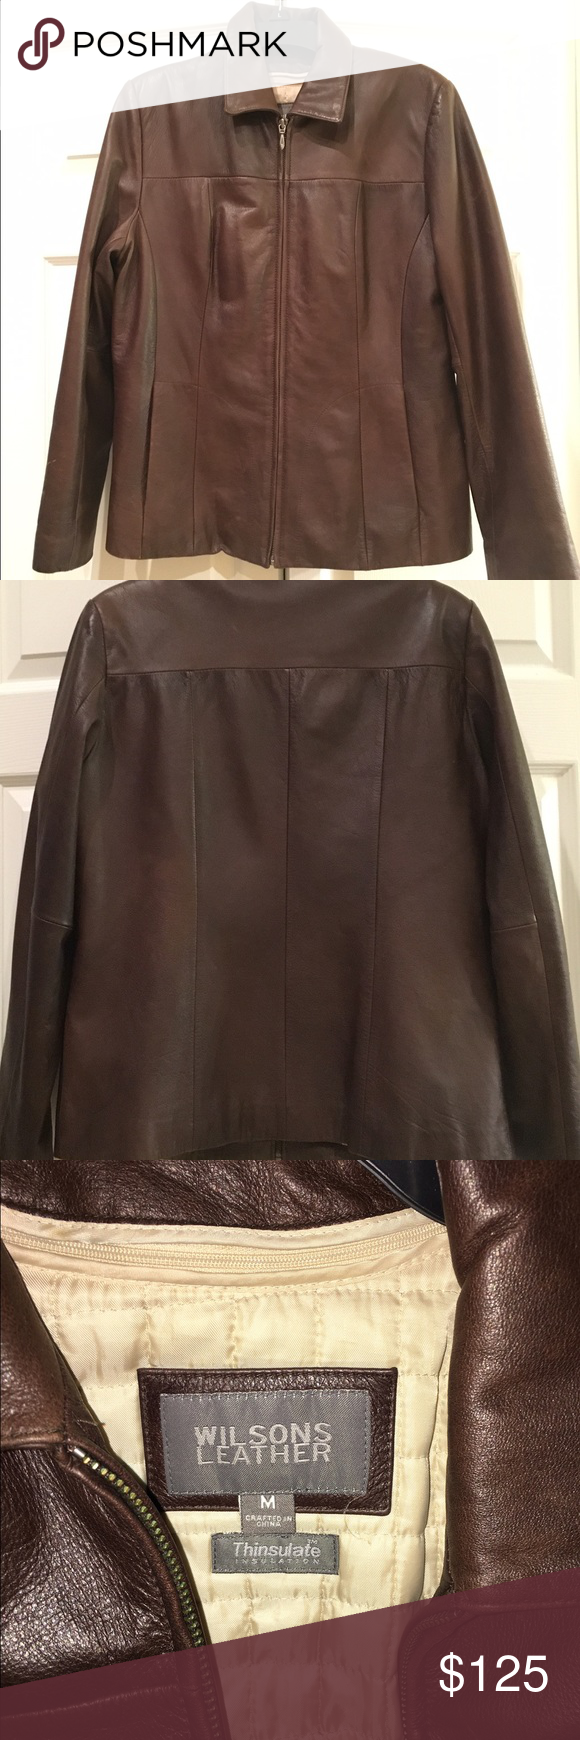 Leather jacket conditioner - Pre D Wilsons Leather Brown Coat